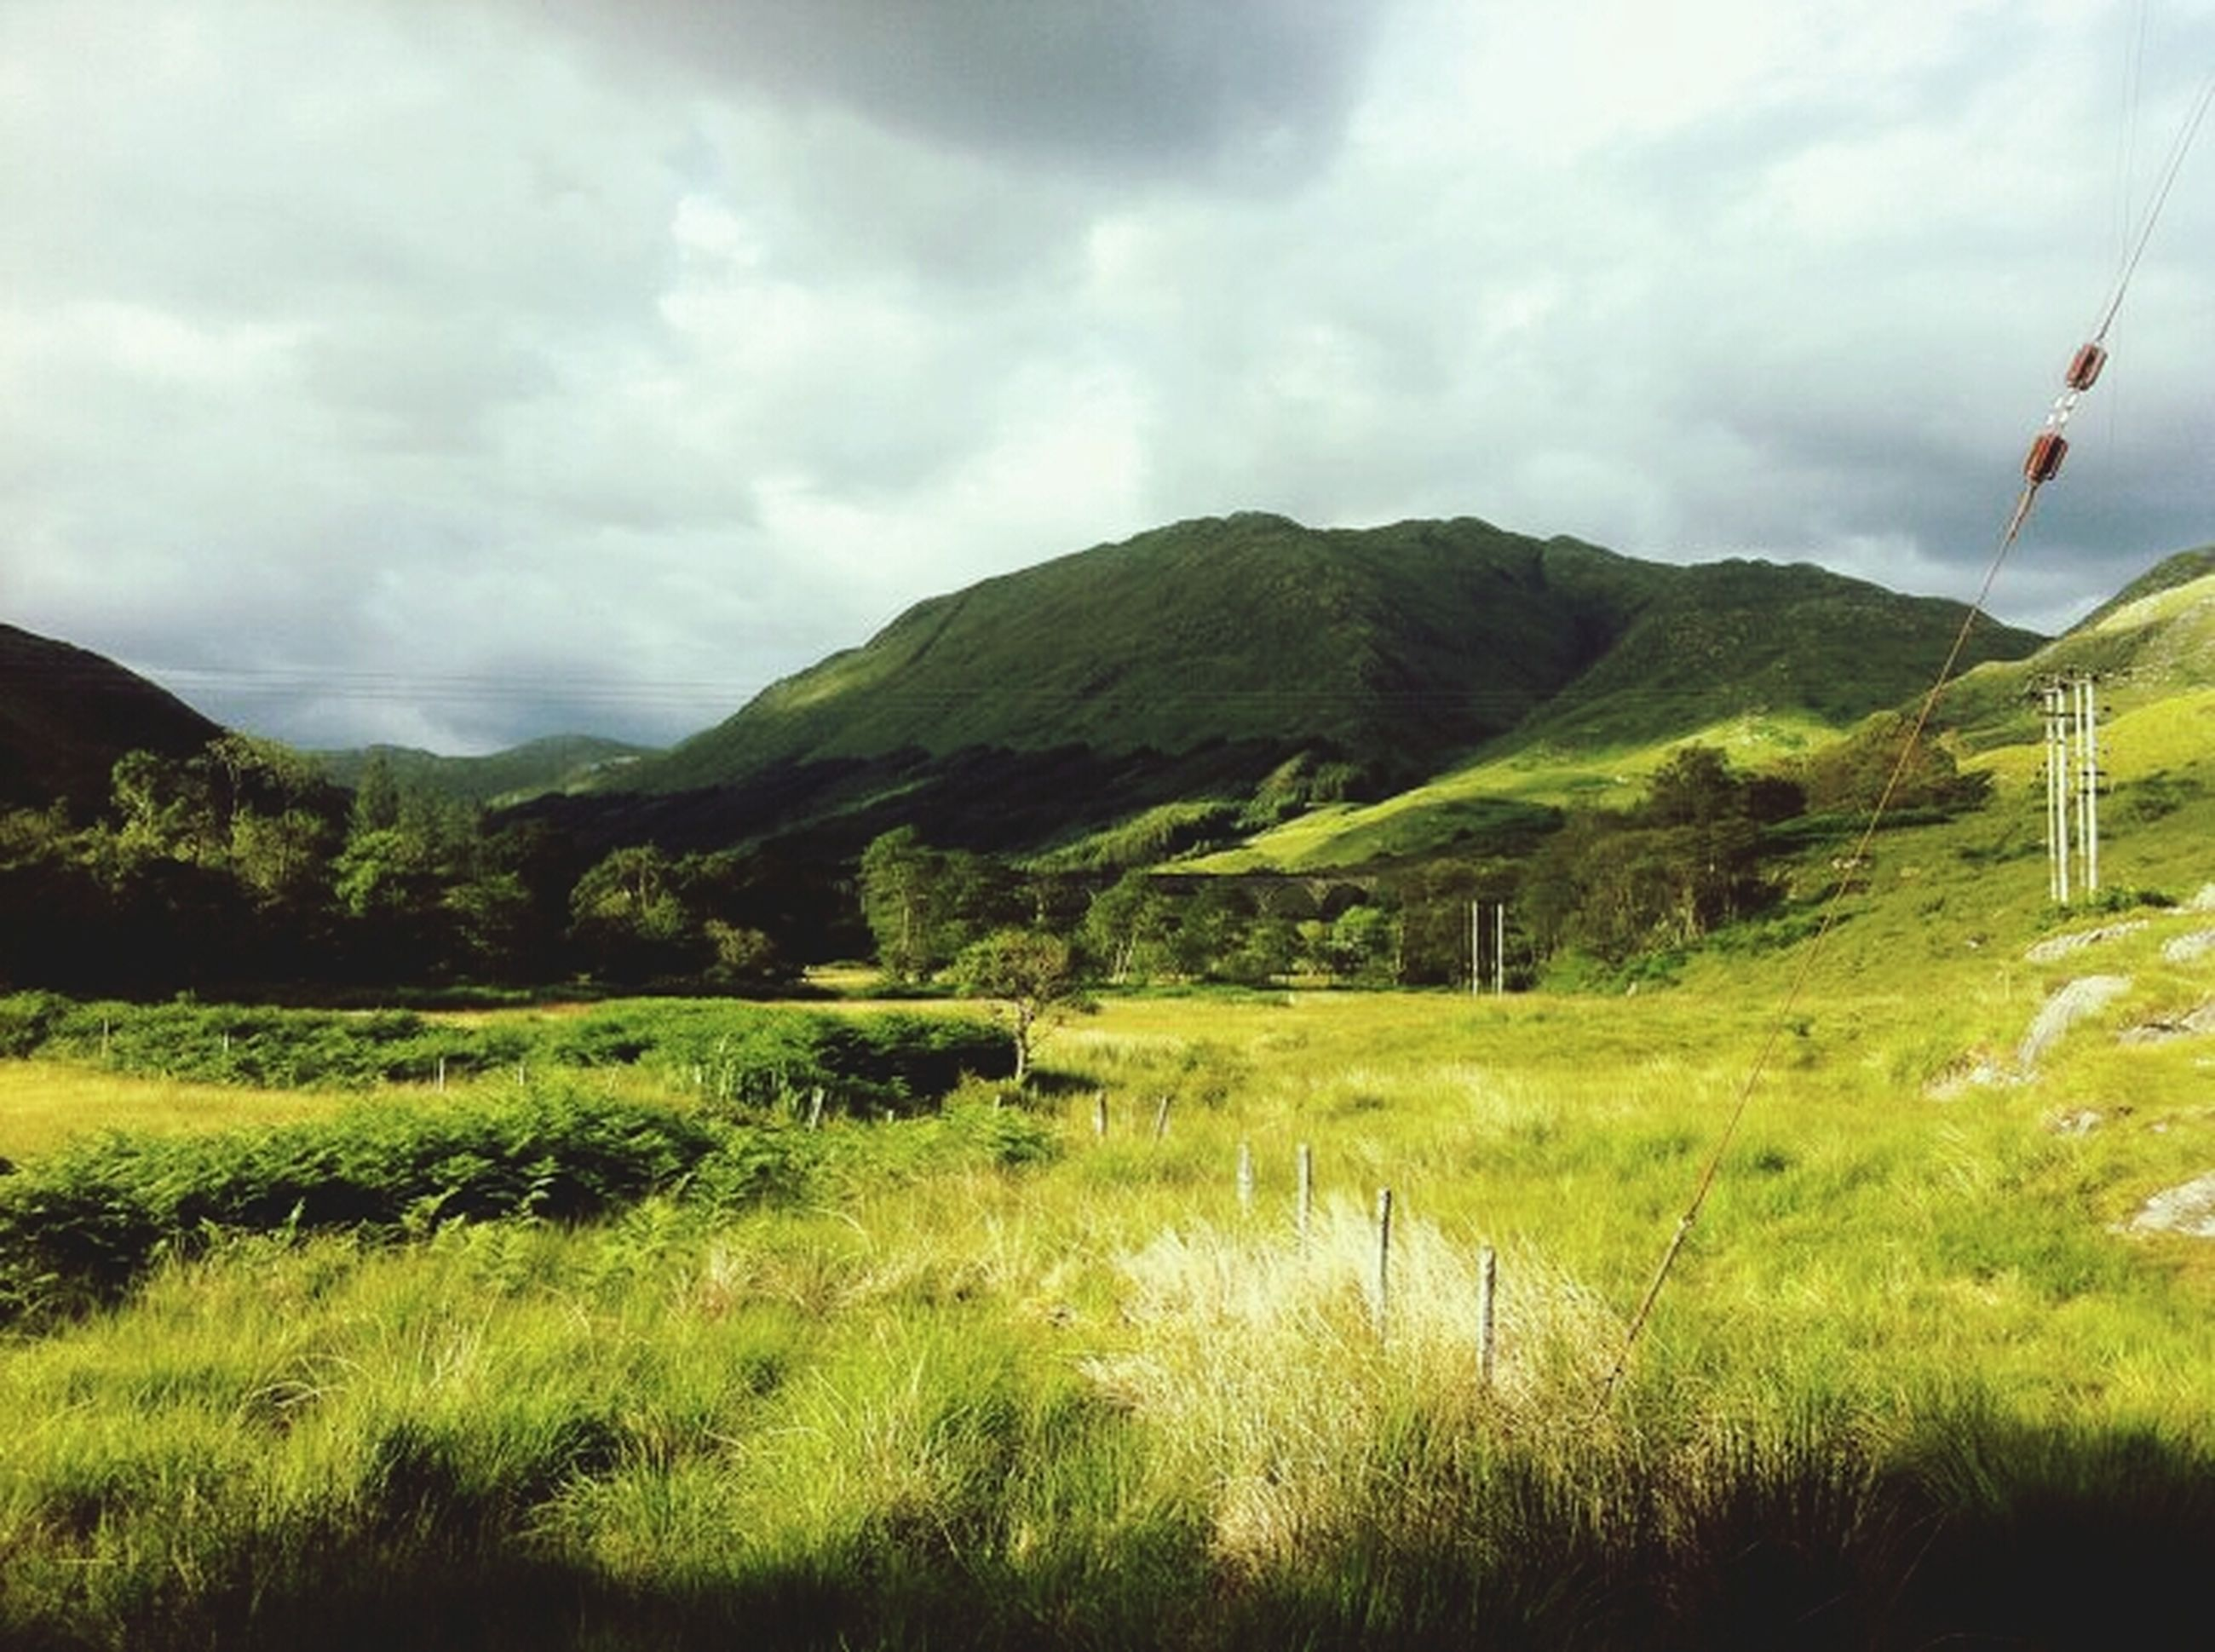 mountain, sky, cloud - sky, mountain range, grass, cloudy, tranquil scene, landscape, scenics, tranquility, beauty in nature, cloud, nature, green color, non-urban scene, hill, day, idyllic, field, weather